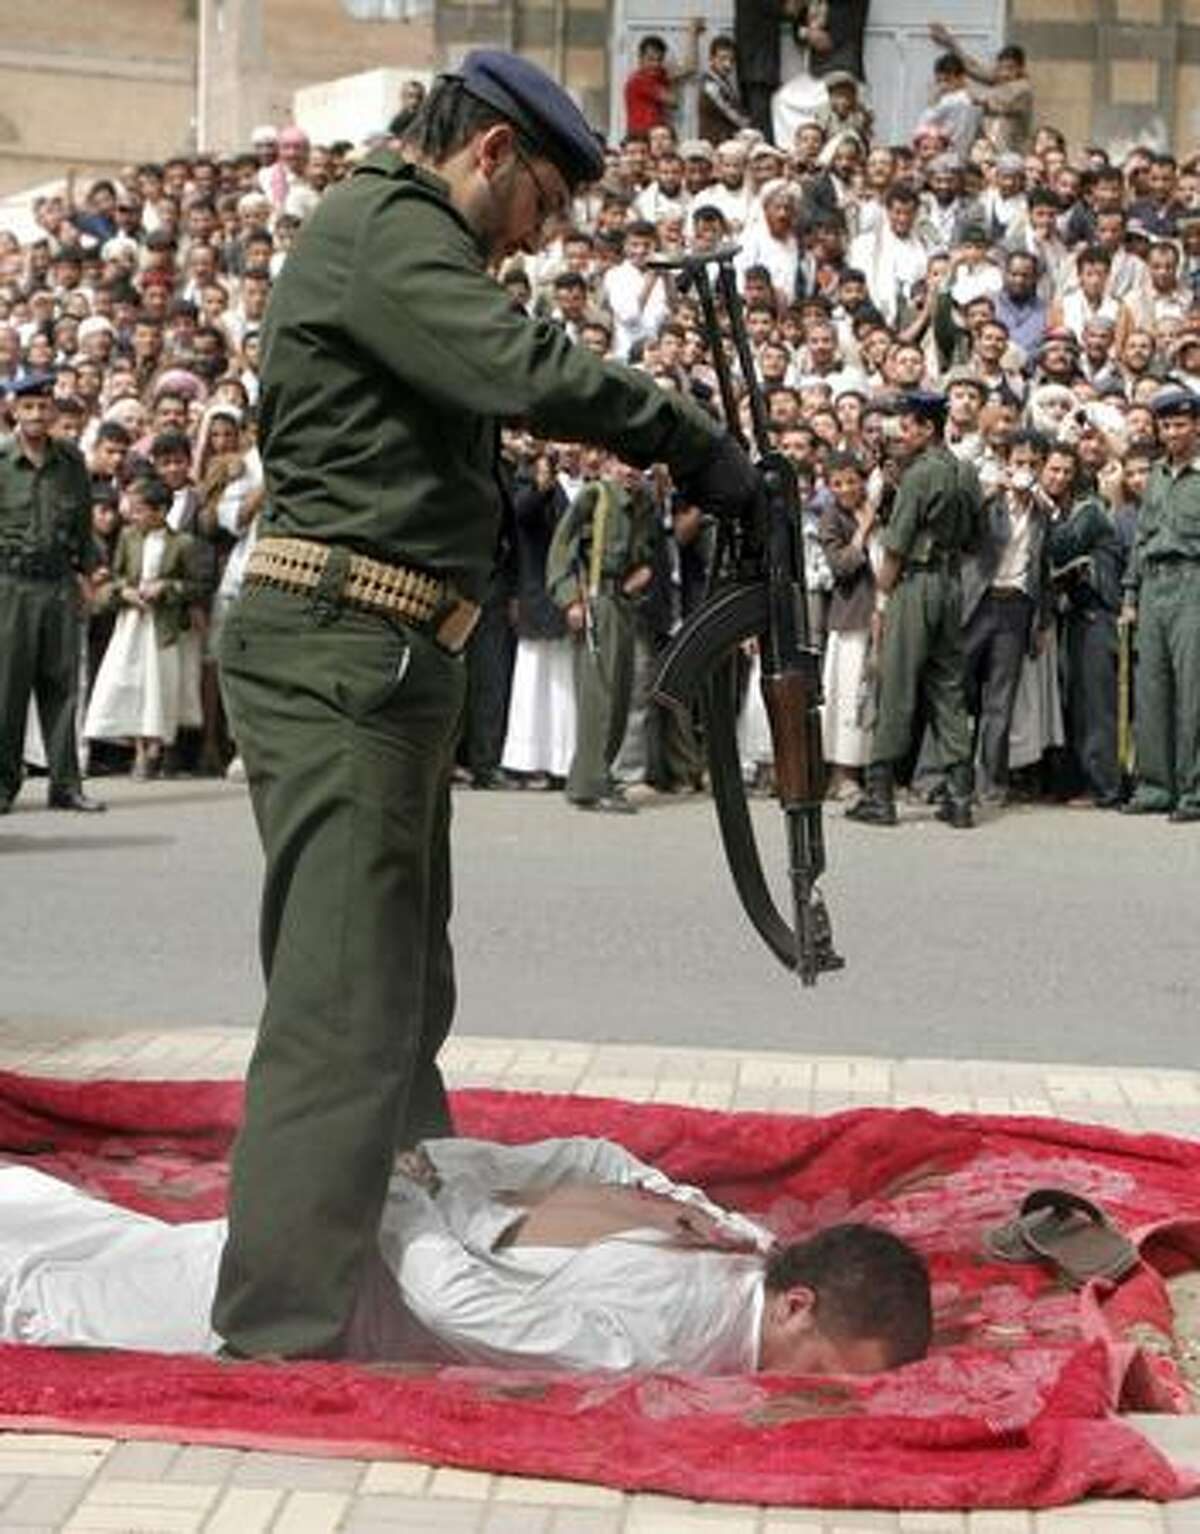 Yemenis gather to watch a soldier execute a man, lying face down on a large piece of red cloth, his hands bound behind him, in front of the central prison in San'a. According to Yemen's news agency, the man was sentenced to death for raping and killing an 11-year-old boy who came to his shop for a haircut. He confessed at trial to the crimes, as well as to cutting his body to pieces before dumping it outside San'a. (AP photo)